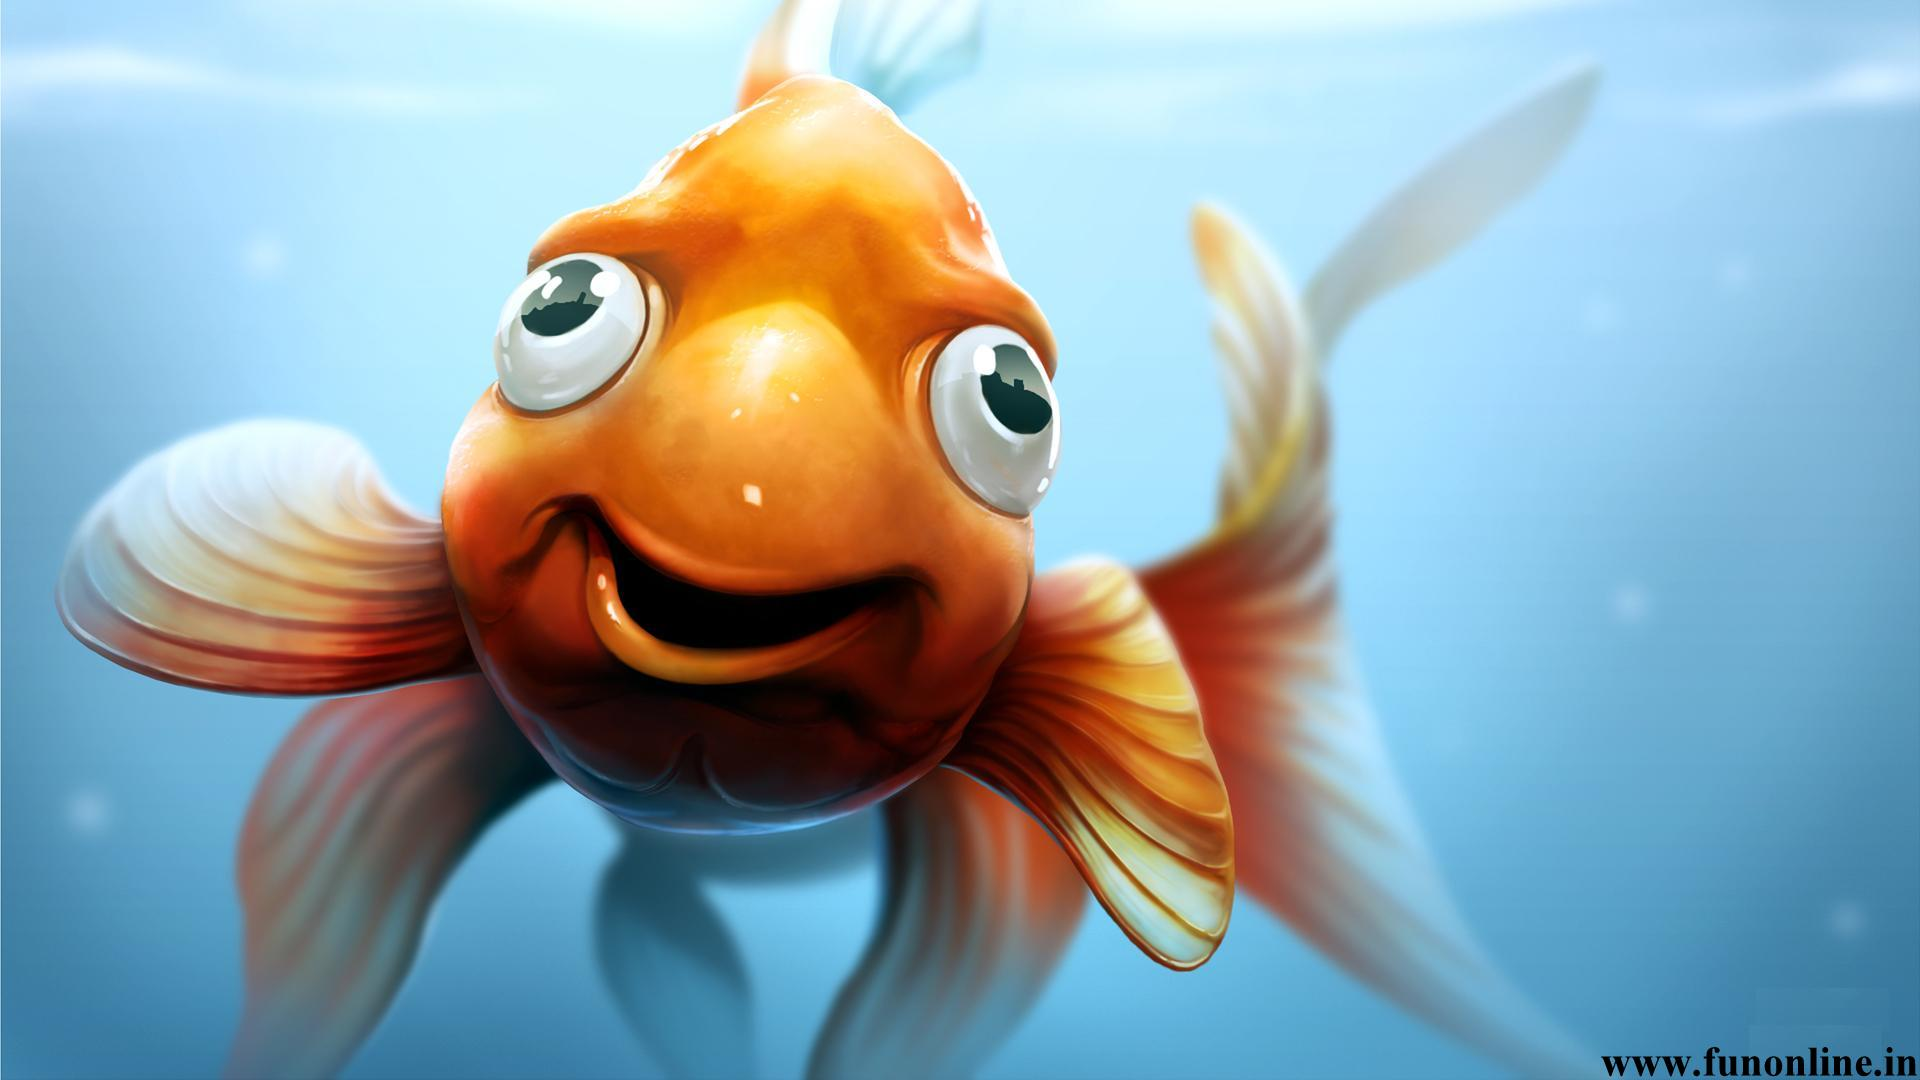 Goldfish Wallpapers Download Funny Kitten and Goldfishes Wallpaper 1920x1080